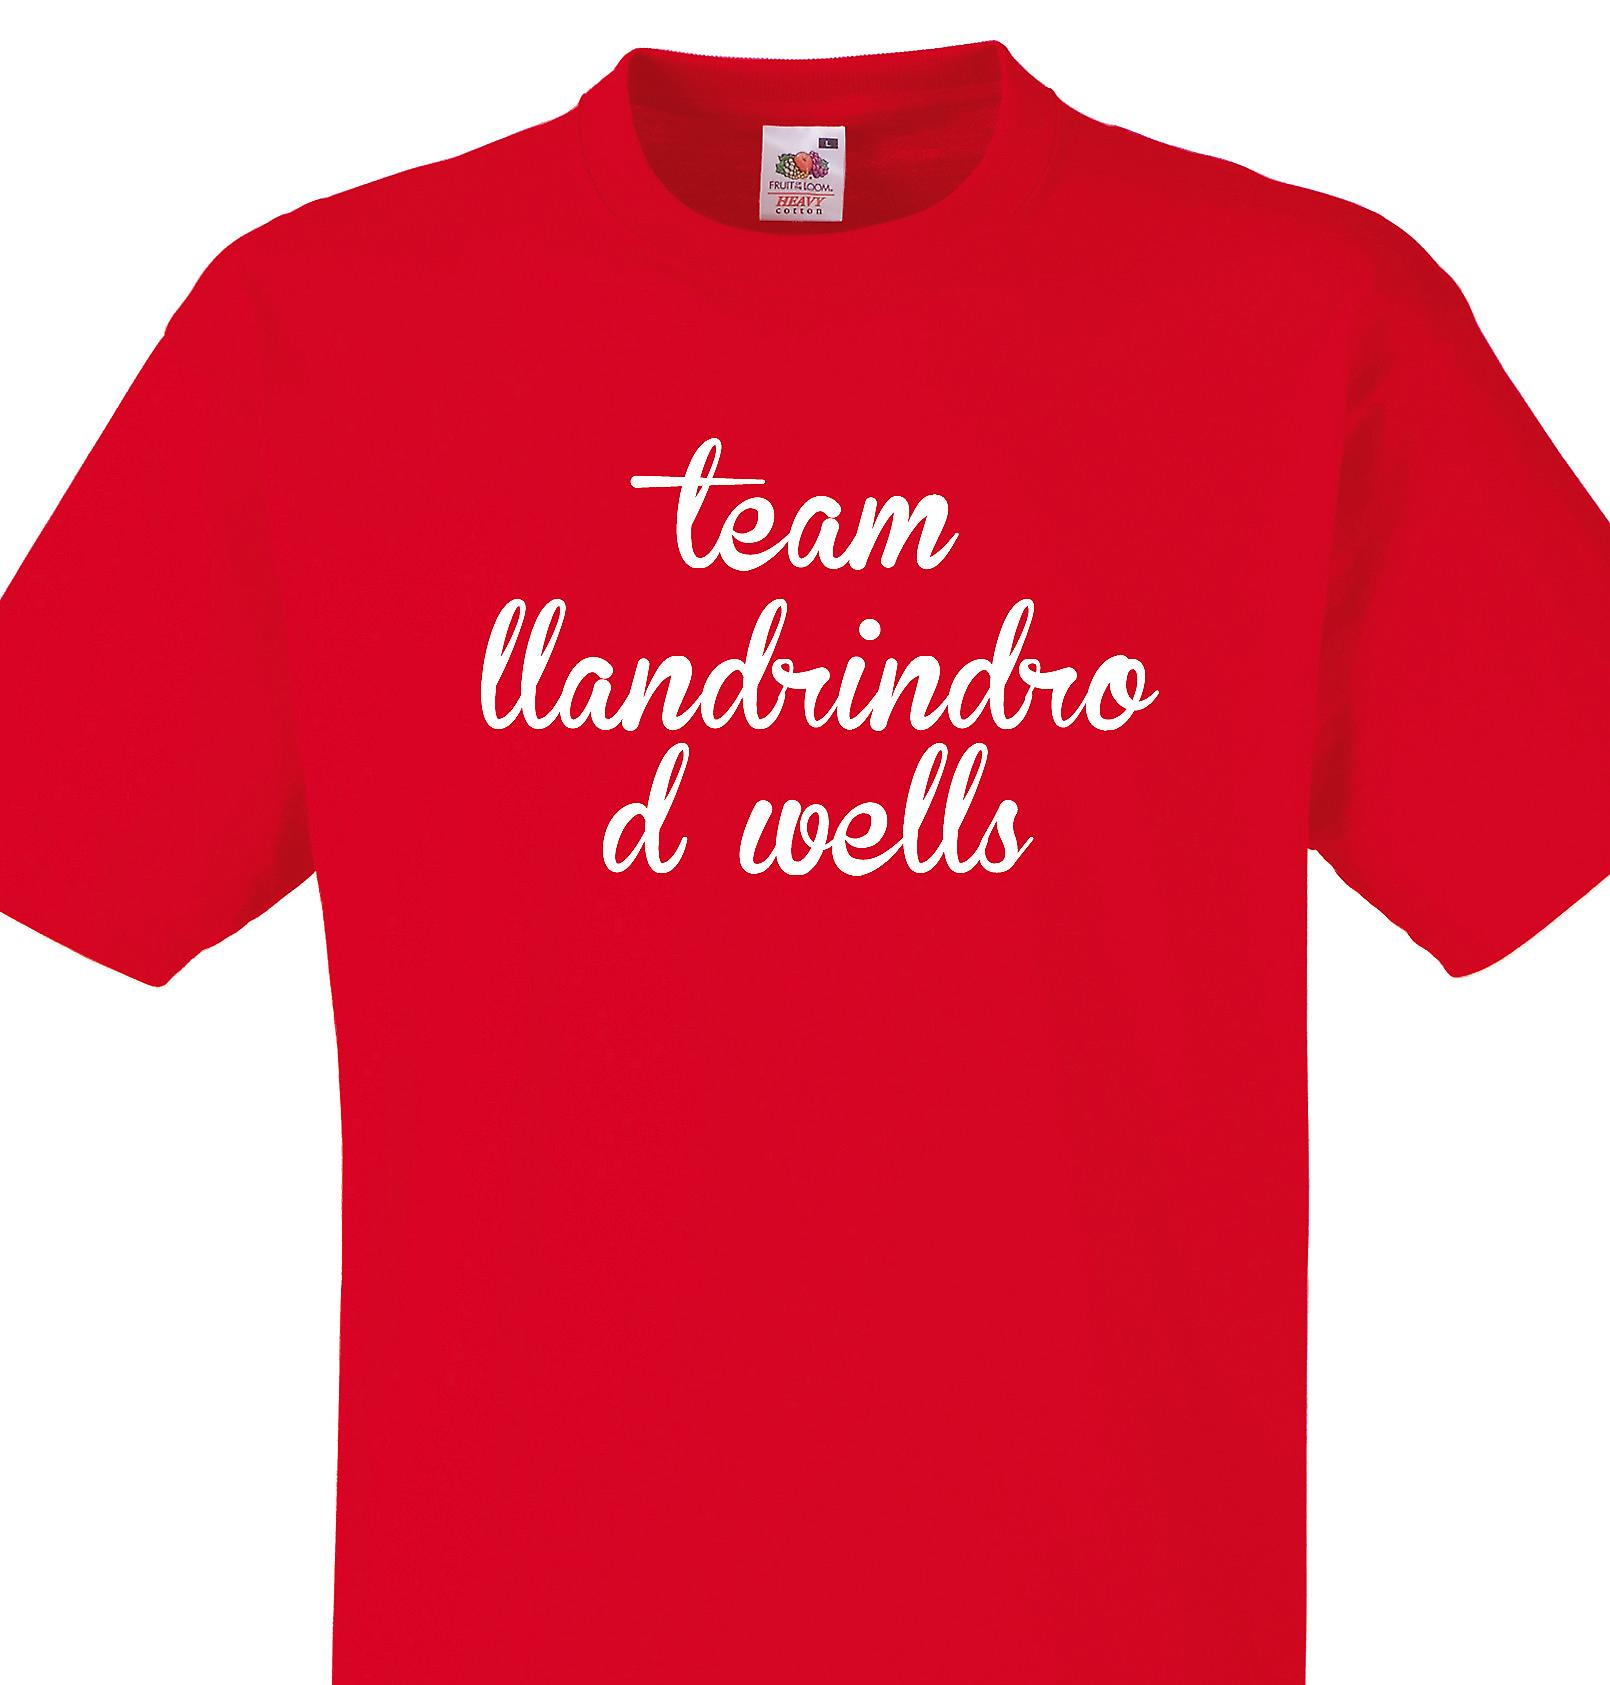 Team Llandrindrod wells Red T shirt